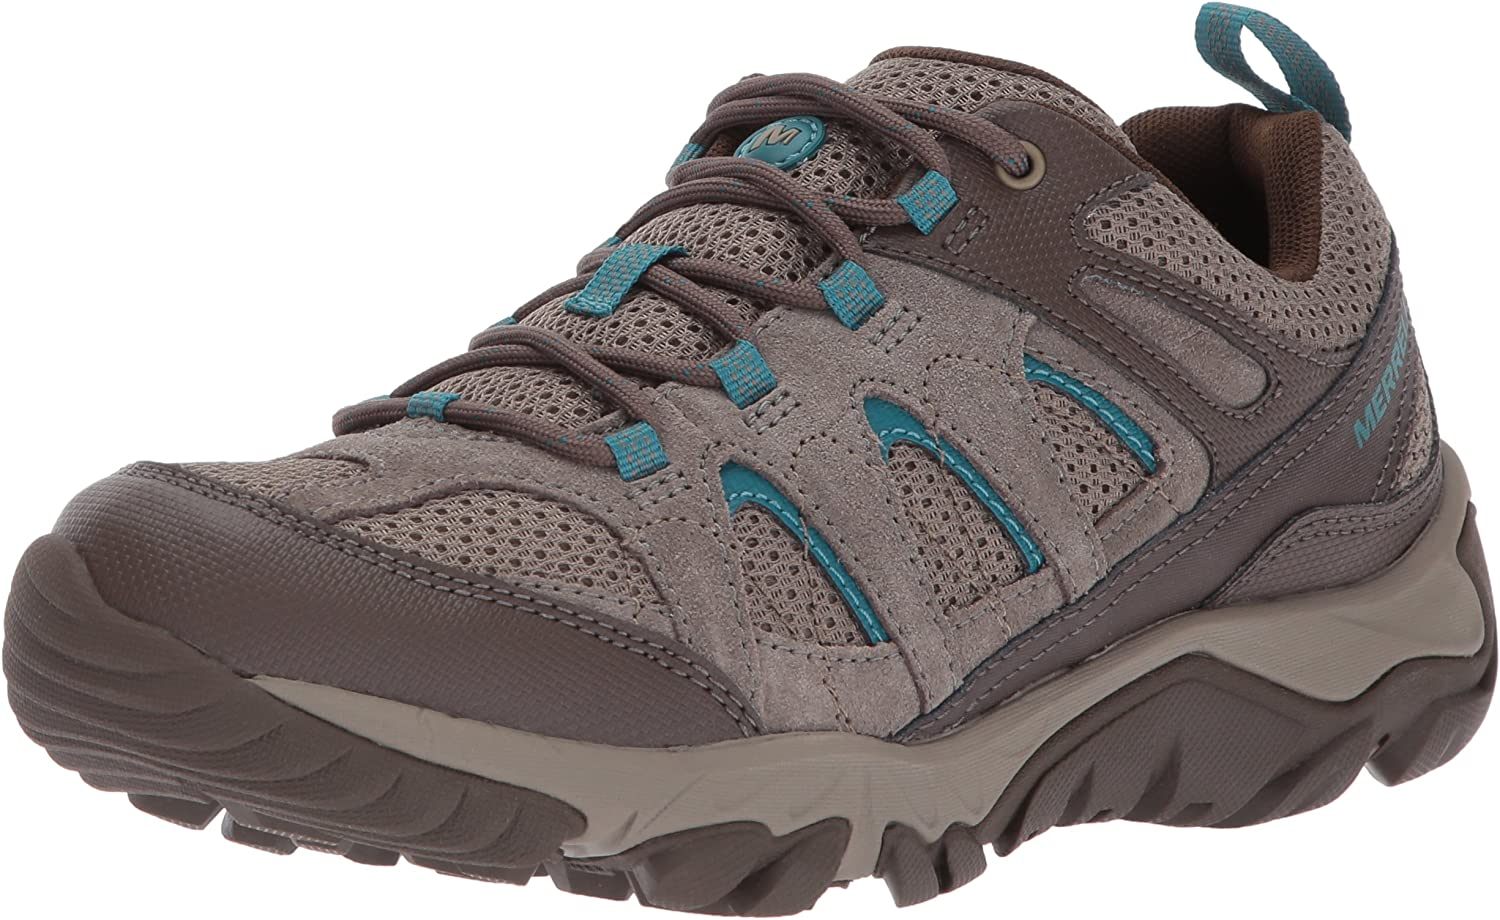 Merrell Outmost Vent Hiking shoes